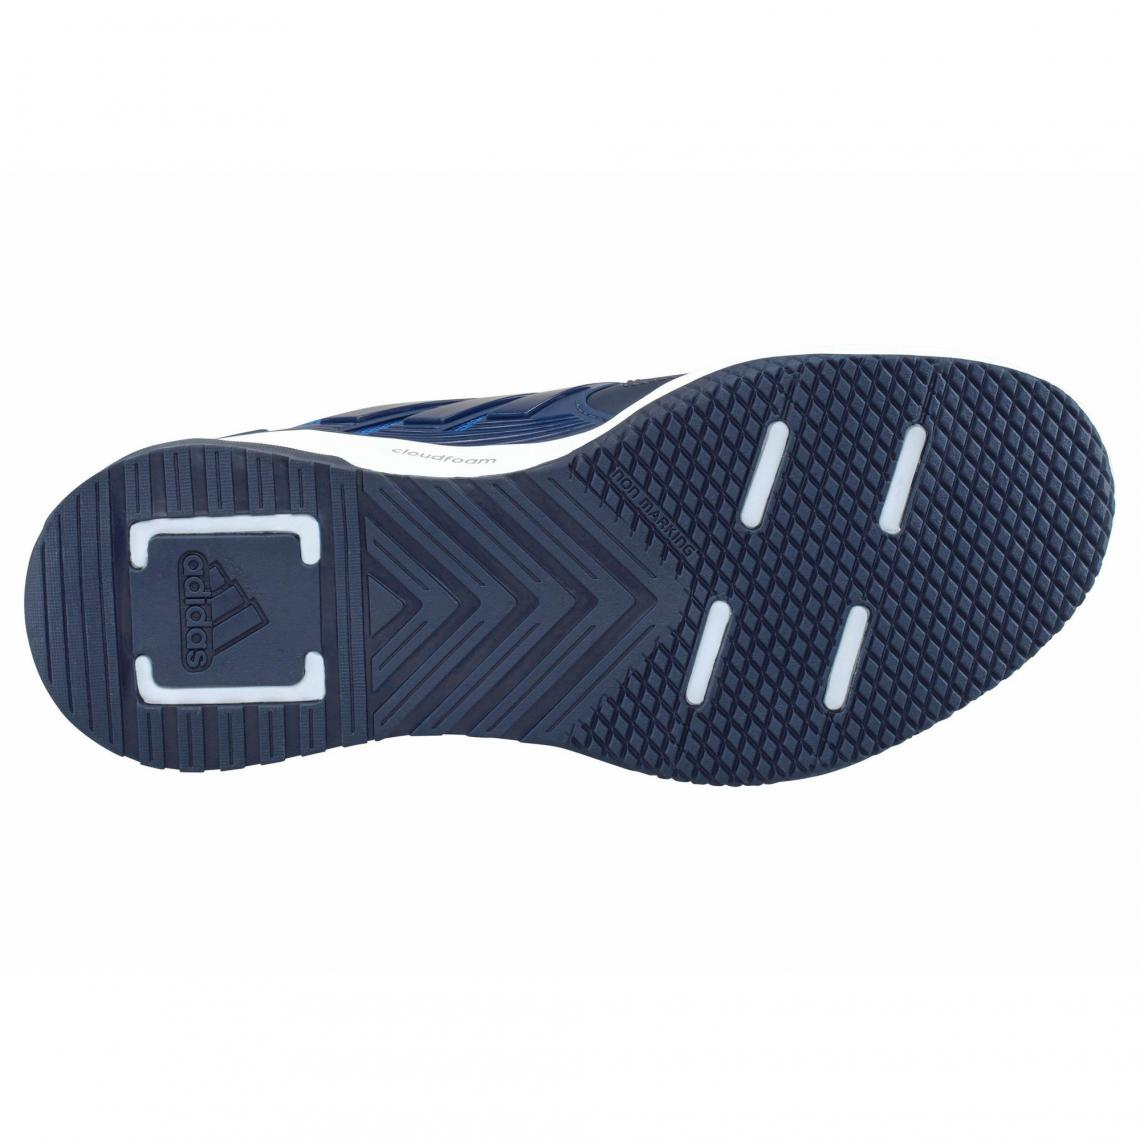 newest collection 63cd3 5cc31 Chaussures de course homme Duramo 8 Trainer M adidas Performance - Bleu  Adidas Performance